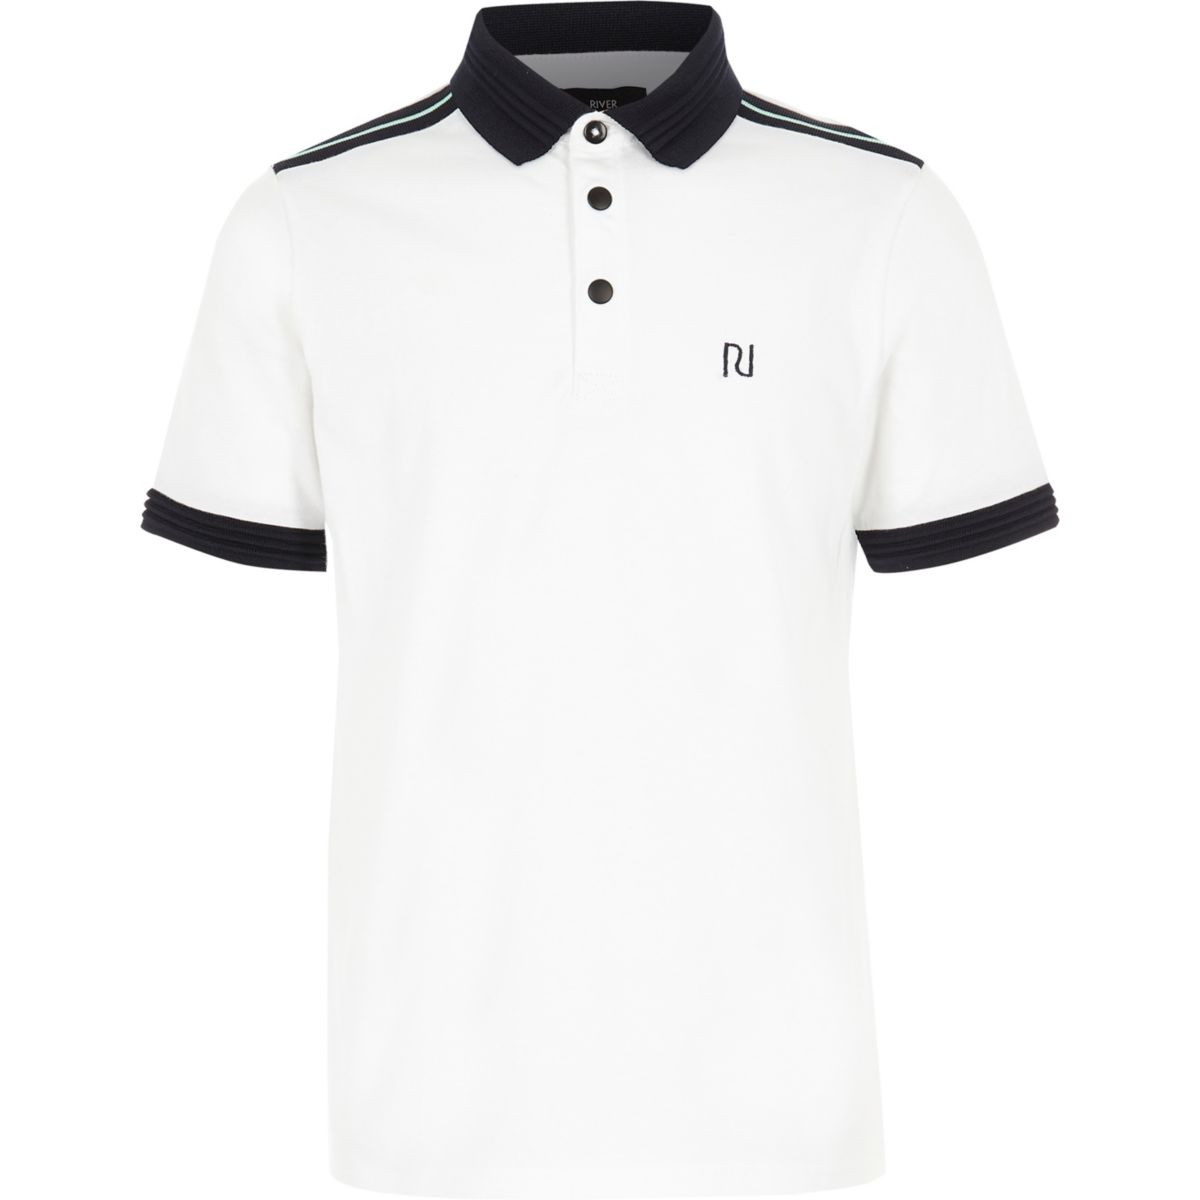 Boys white contrast stripe polo shirt